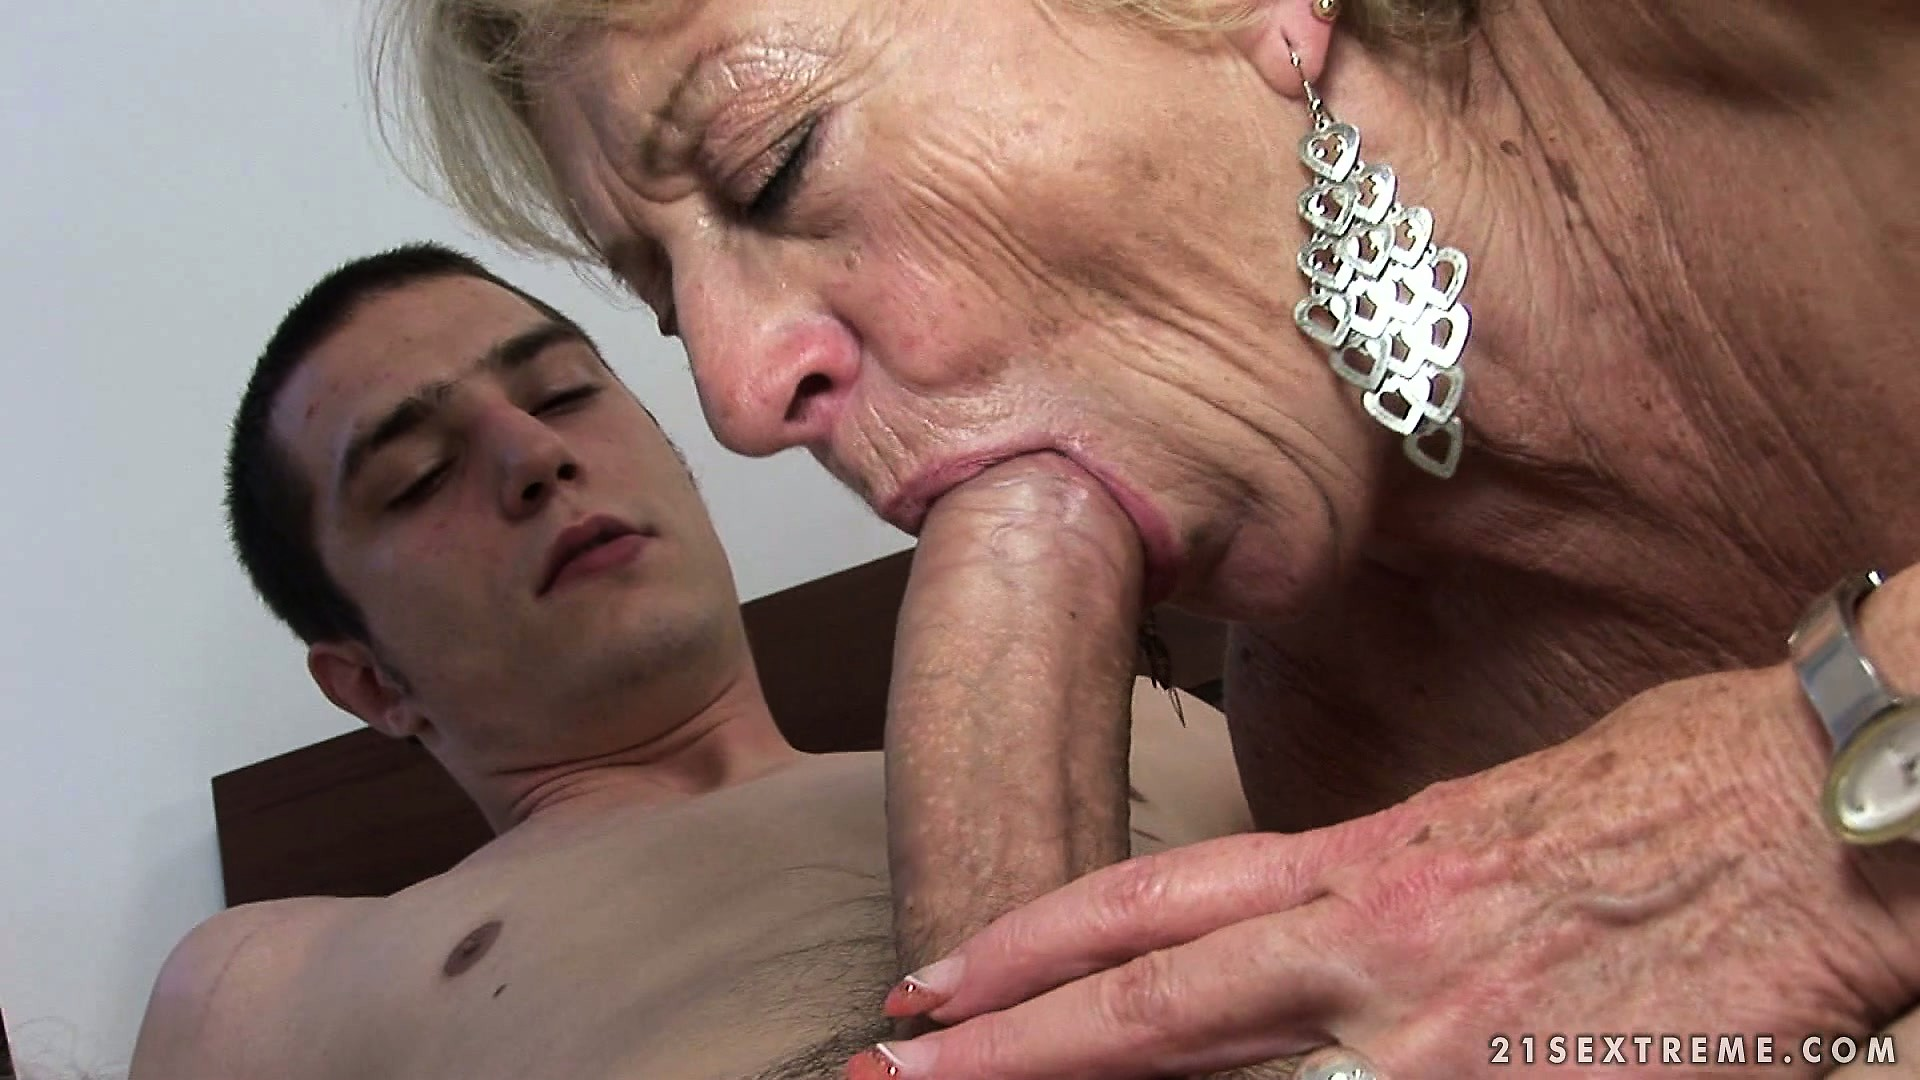 Nude grannies with male female sex organs clips fucking sex